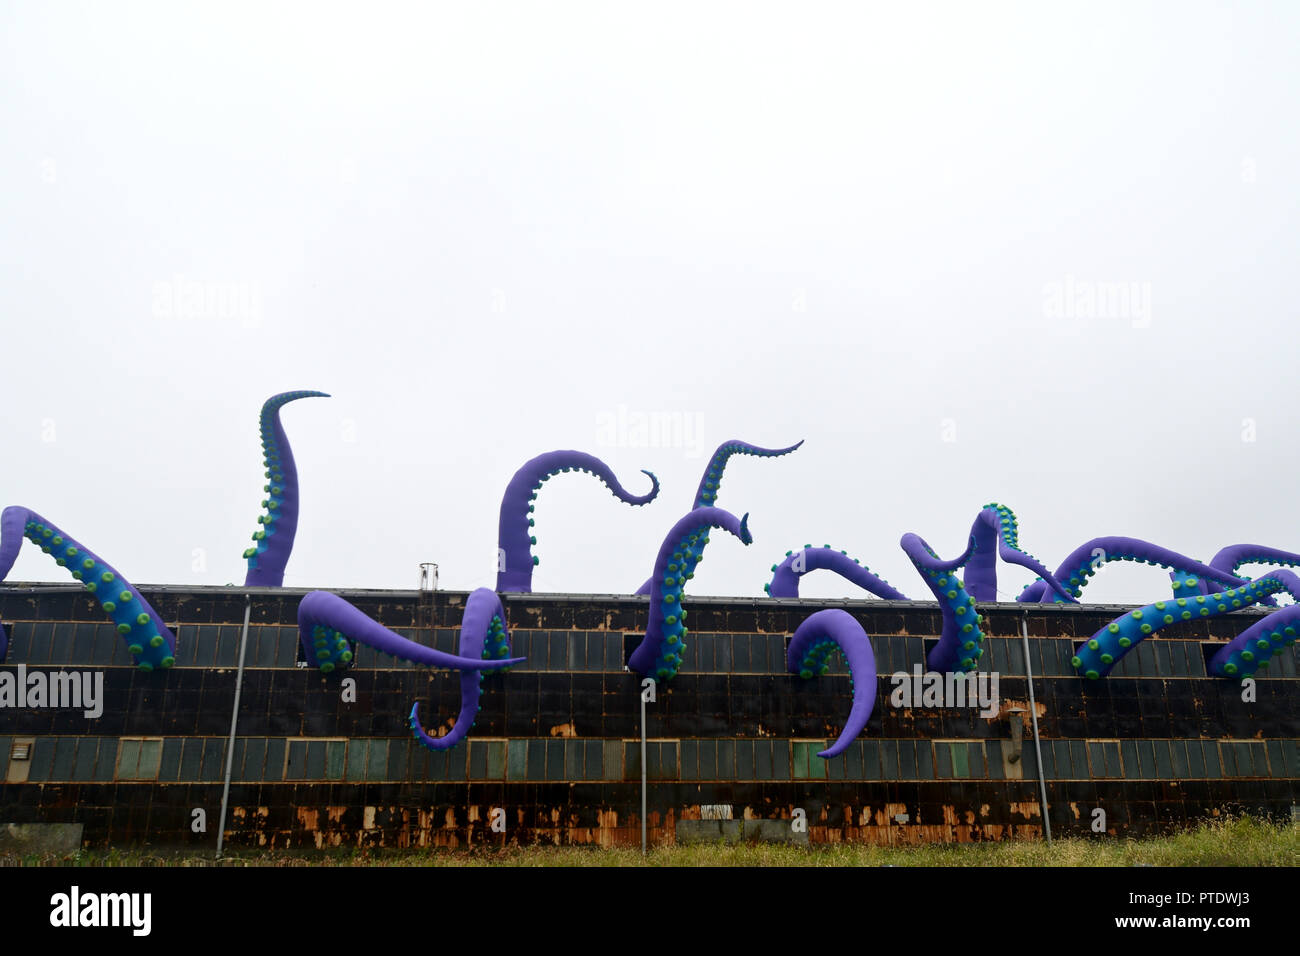 Philadelphia, USA. 8th Oct 2018. Inflatable tentacles of a temporary art installation, titled Navy Yard Sea Monster, by British artist Pedro Estrellas and Filthy Luker emerge from an old warehouse in Philadelphia, Pennsylvania, on October 8, 2018. The art work is commissioned by Philadelphia Industrial Development Corporation to promote the redevelopment of Philadelphia Navy Yard. Credit: PhotograPHL/Alamy Live News - Stock Image